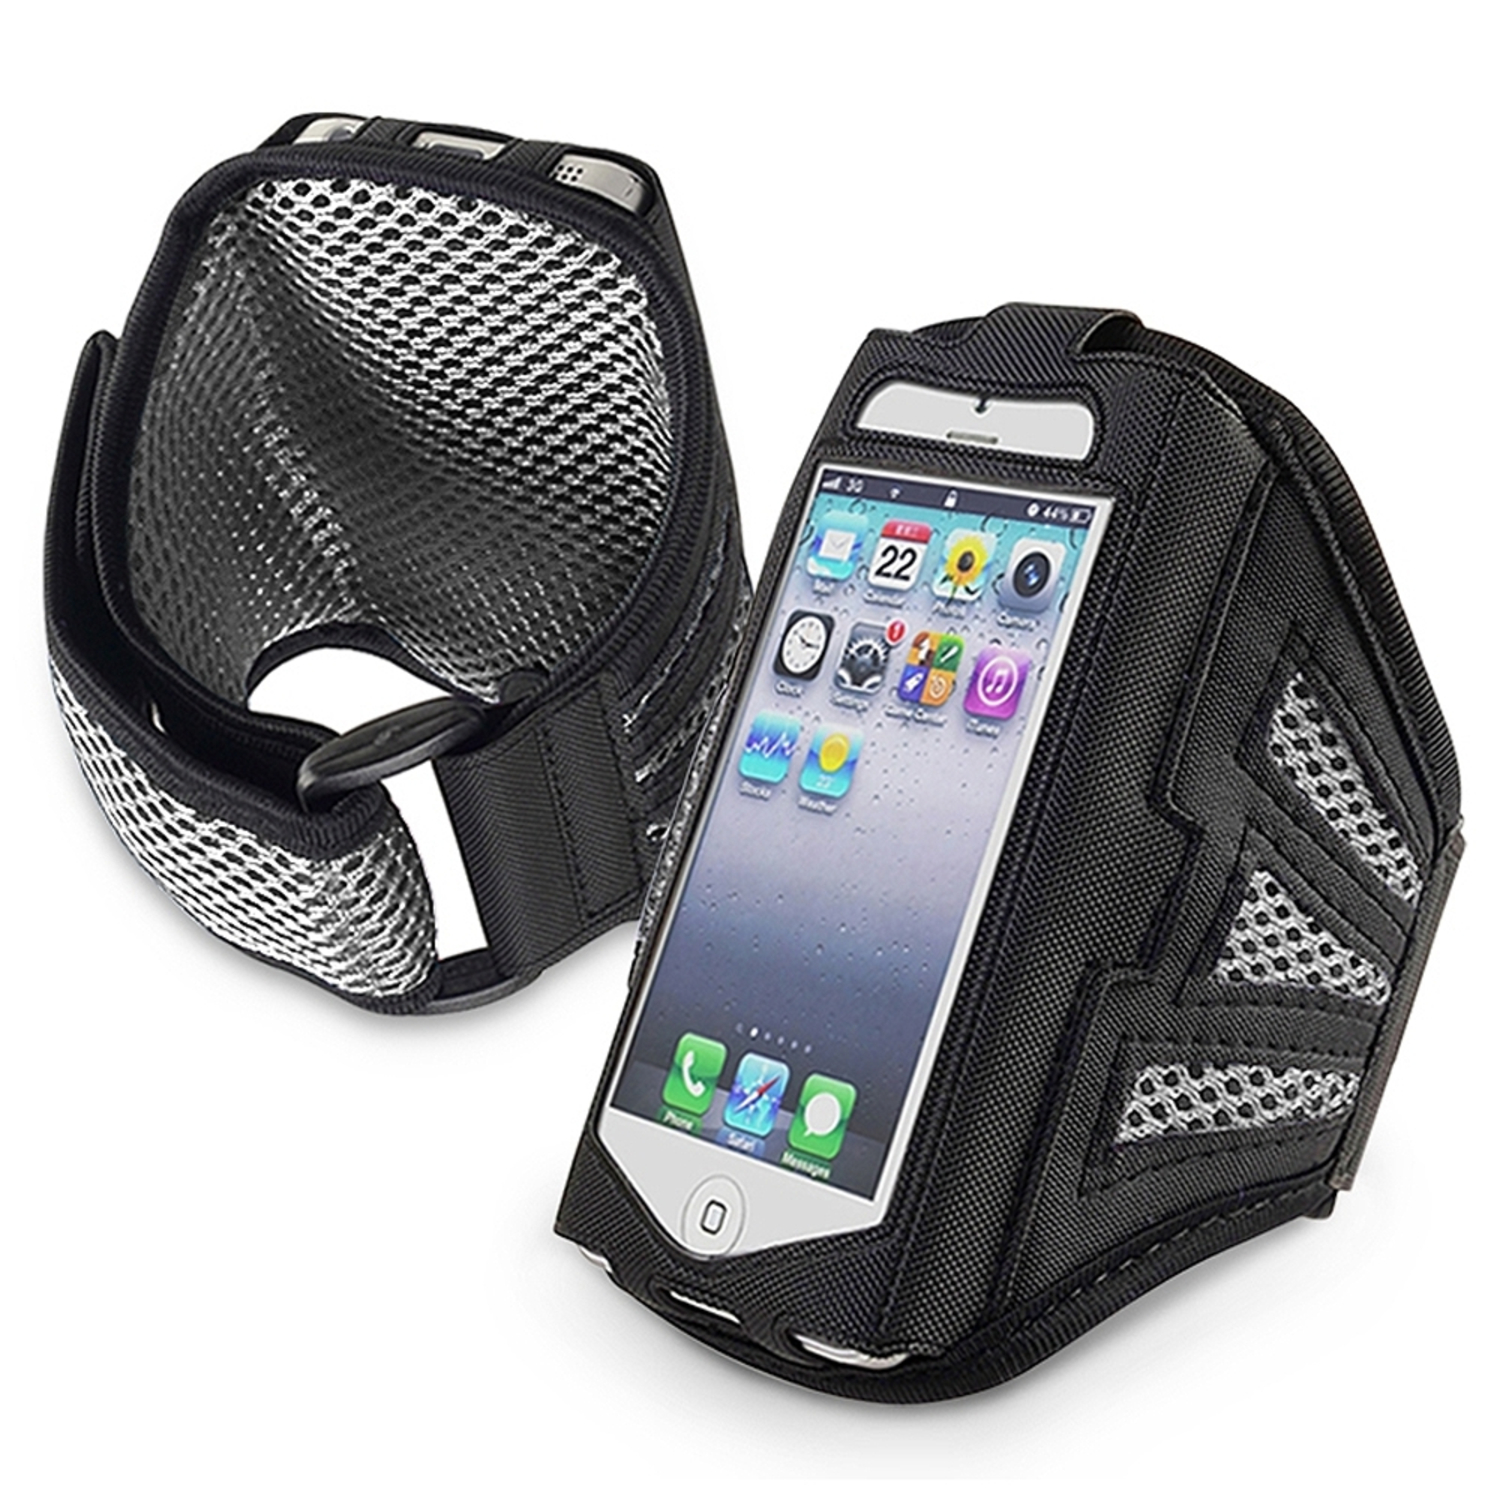 Insten Sports Running Workout Gym Armband Case Holder Pouch For iPhone SE 5 5S 5C / iPod Touch 6th 6G 5th 5G